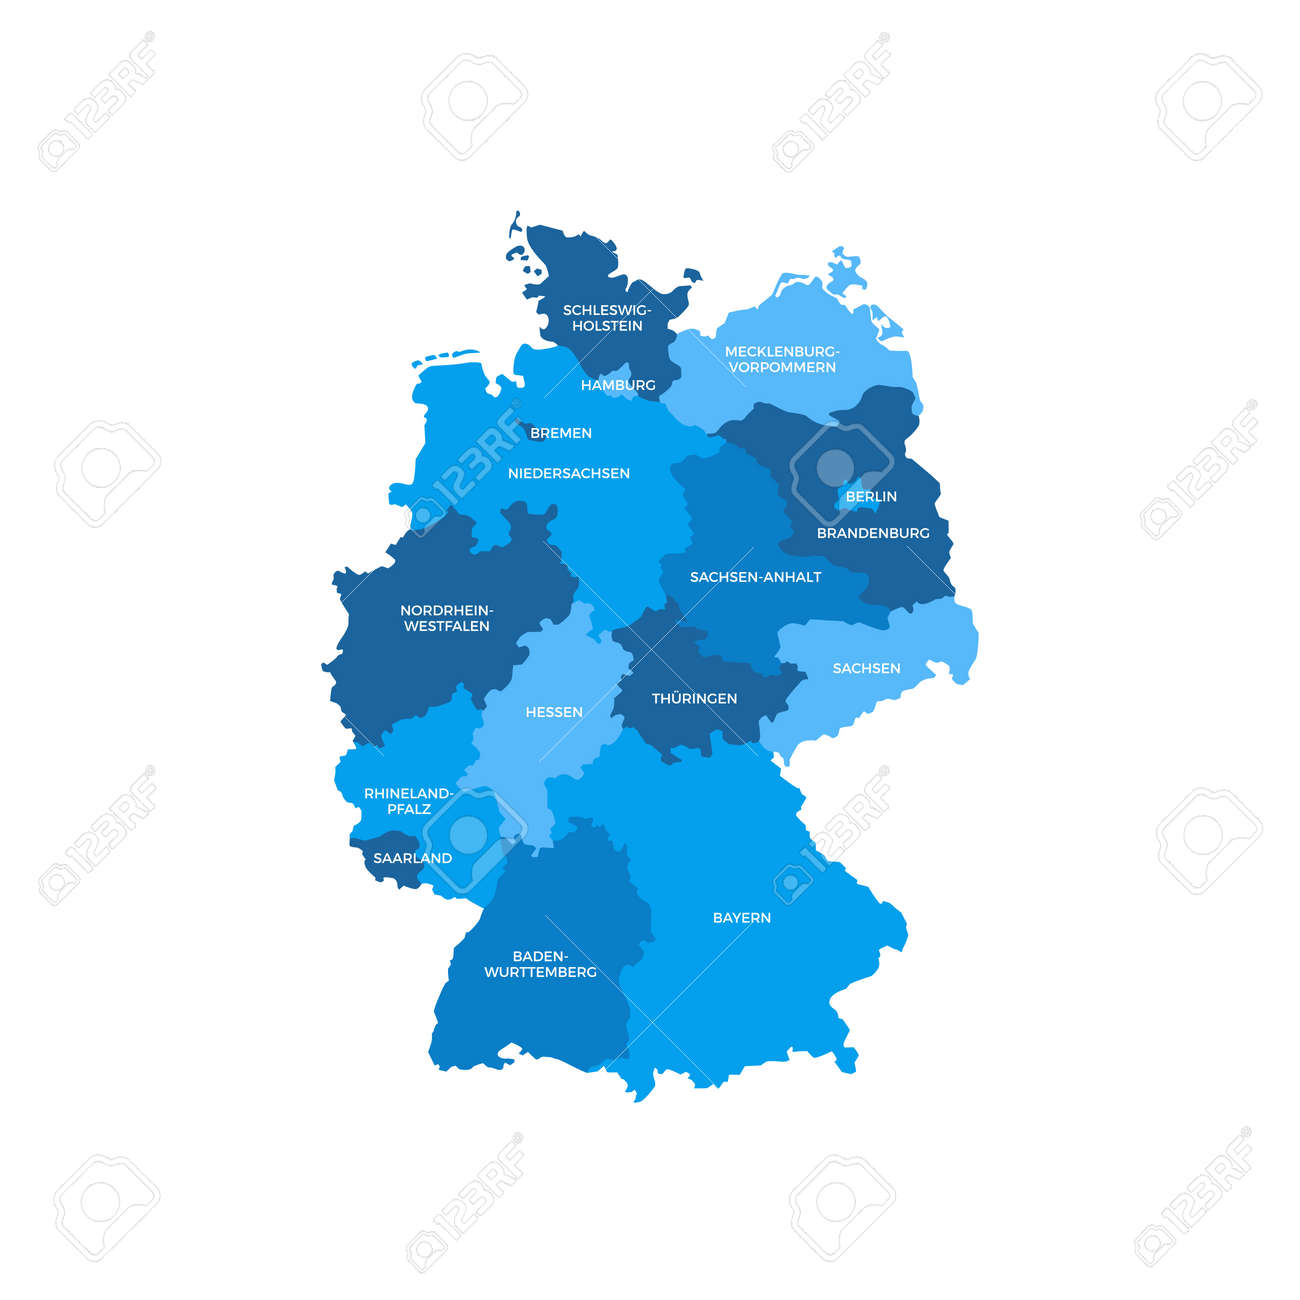 Regions Of Germany Map.Germany Regions Map